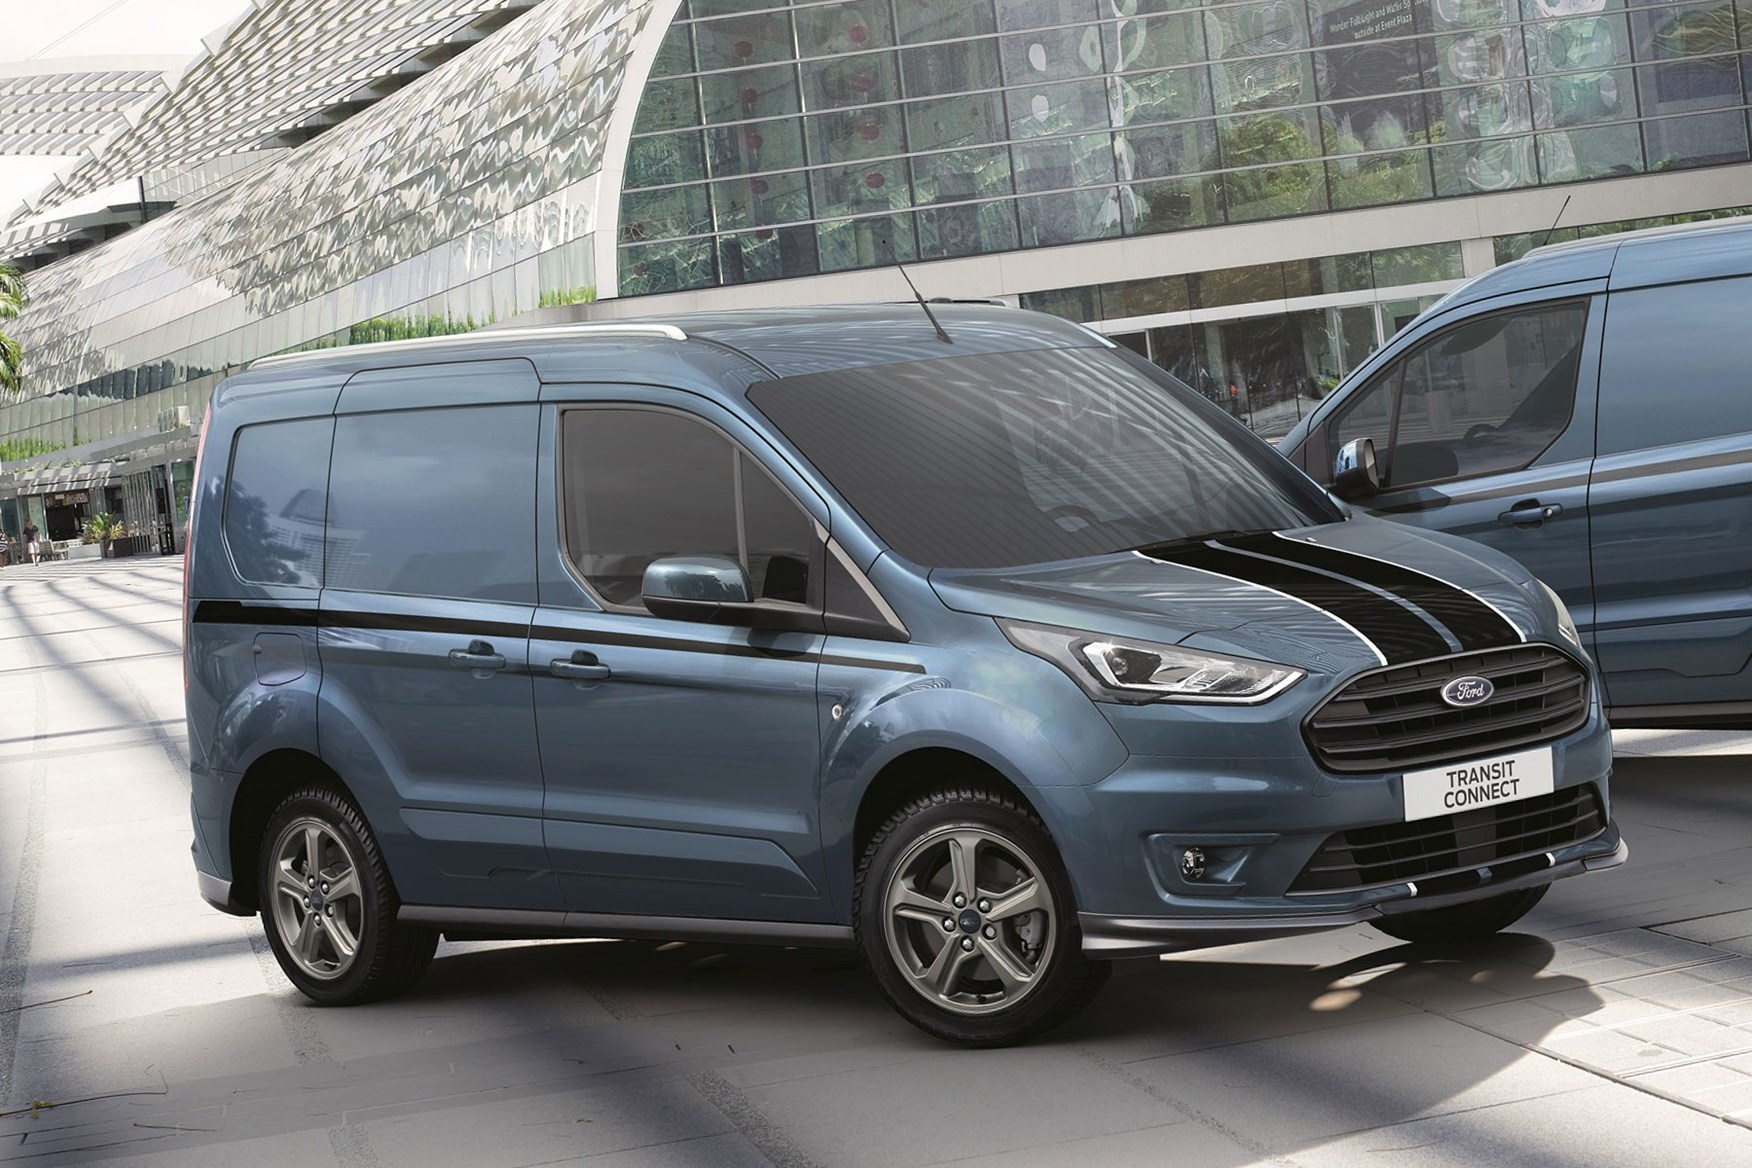 Ford transit connect sport front view